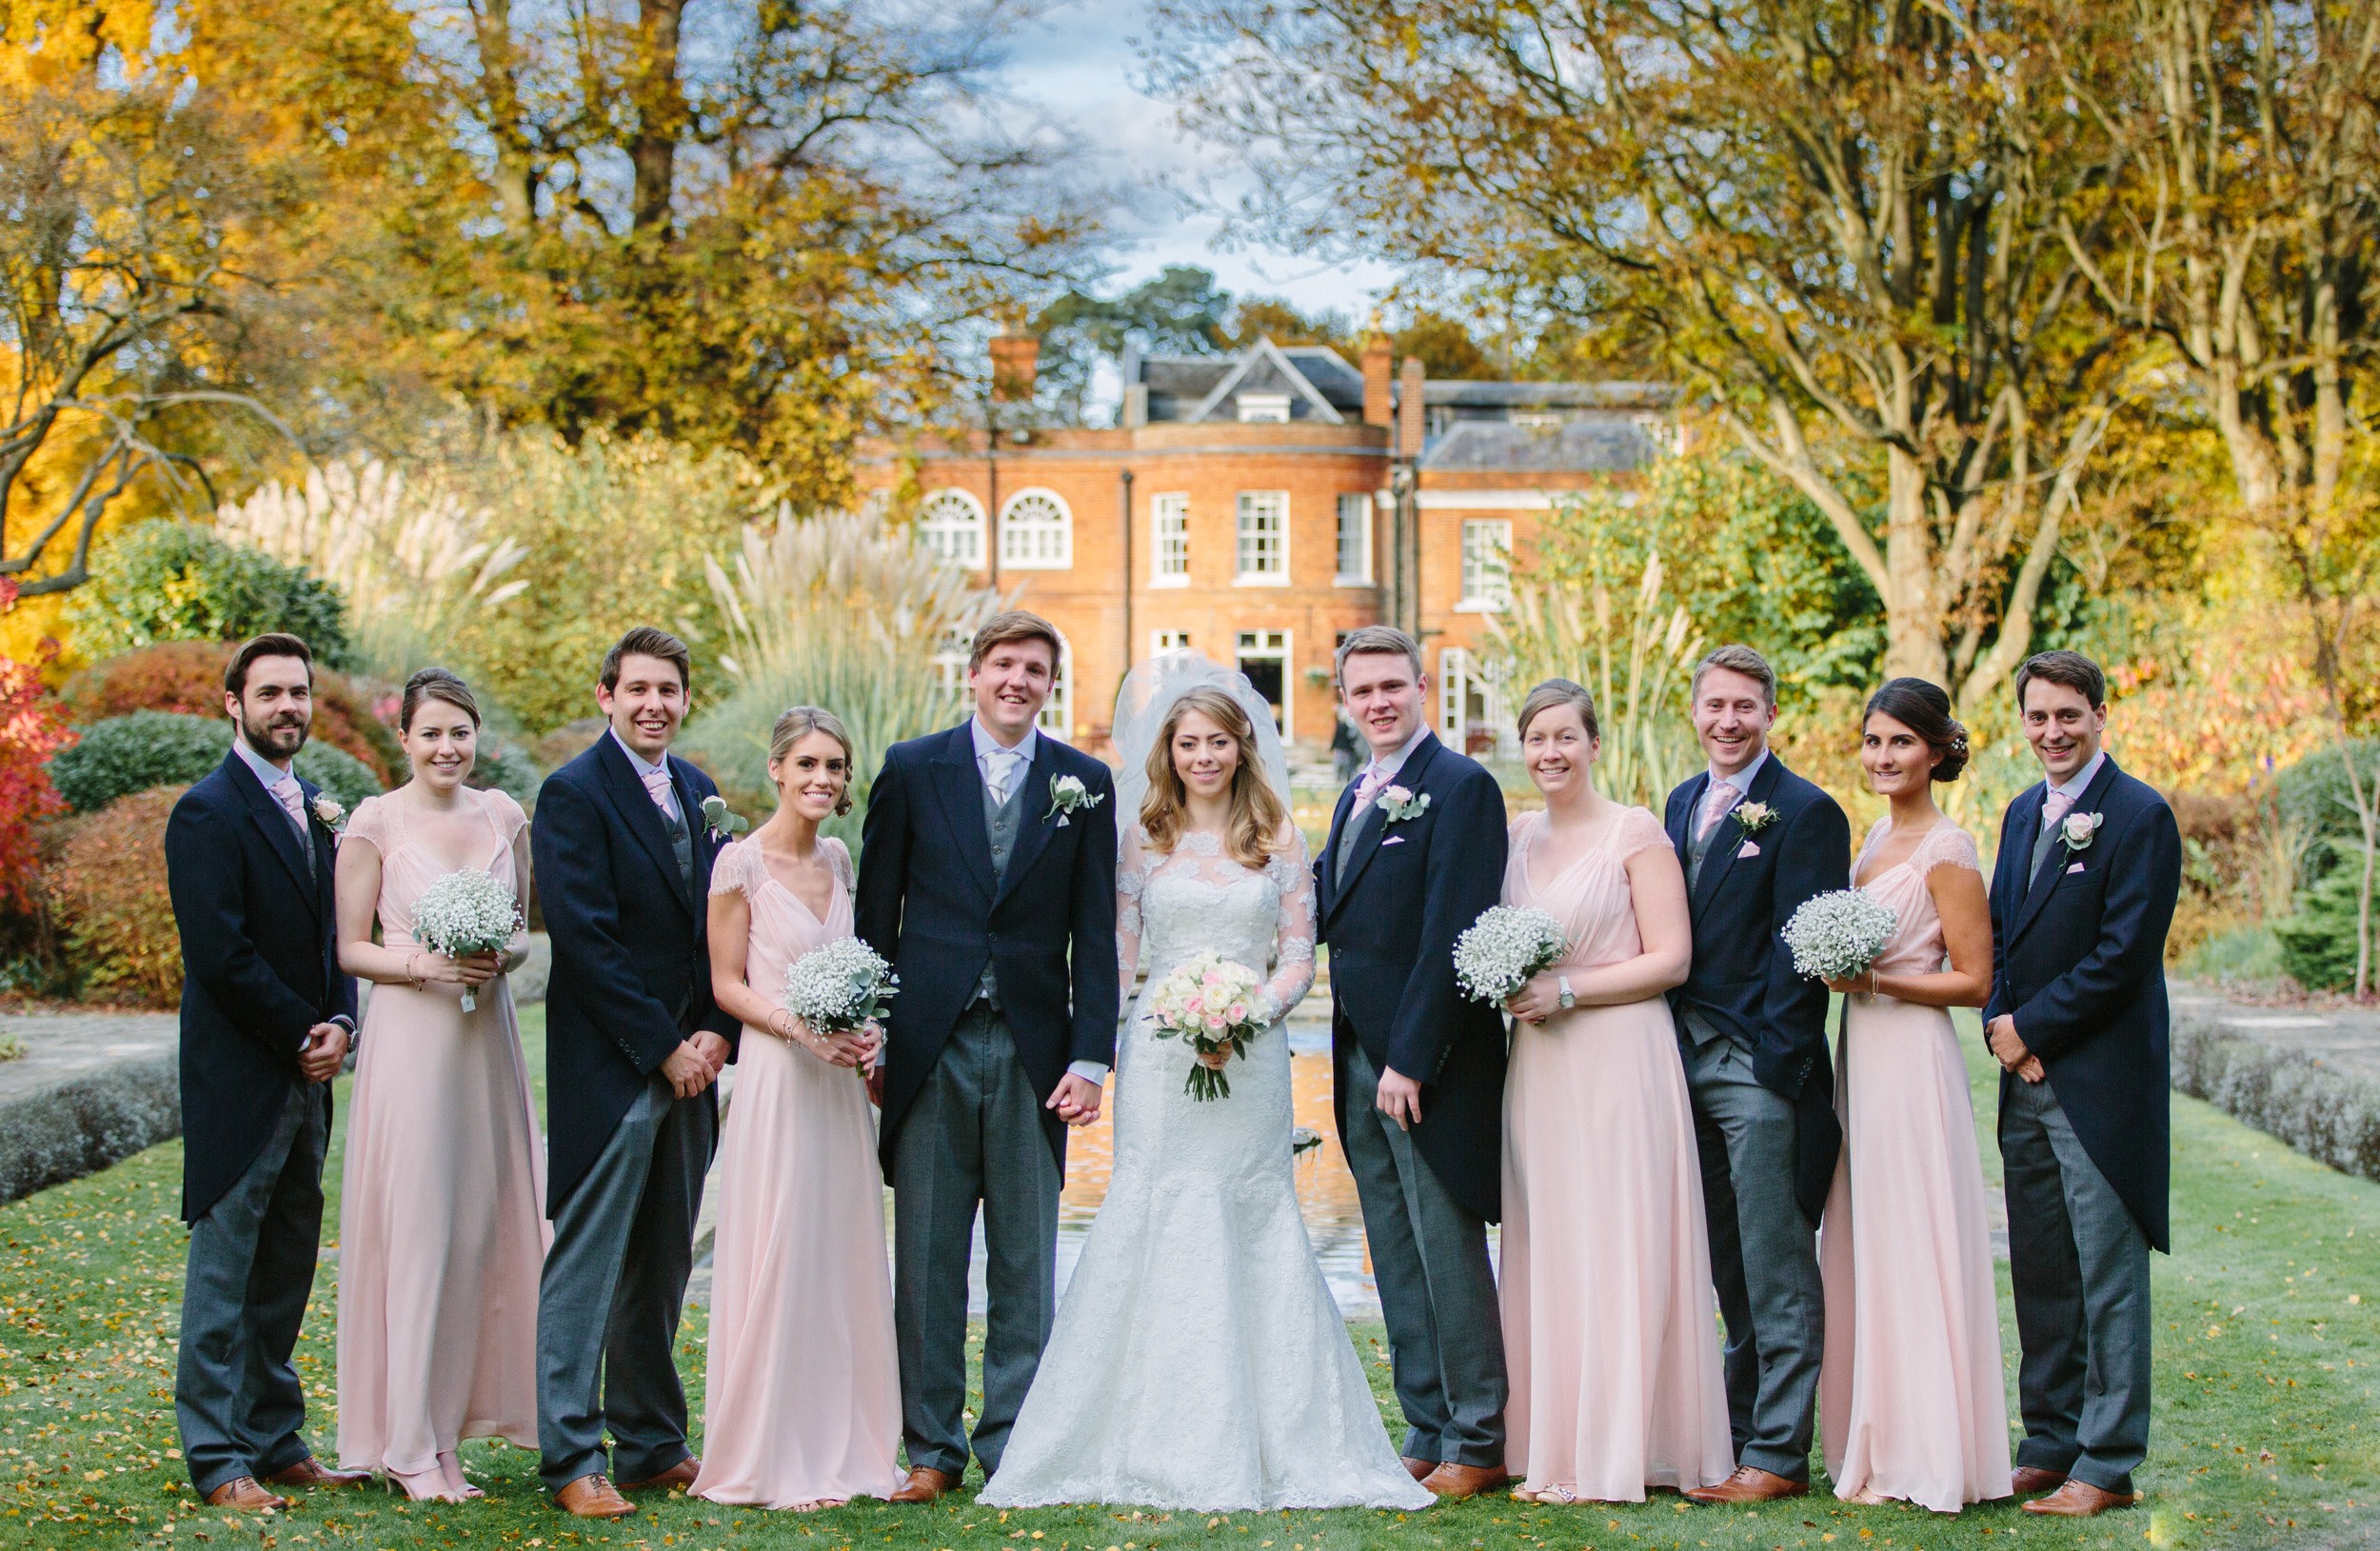 surrey-ascot-royal-berkshire-hotel-autumn-wedding-group-shot-bridesmaids-9